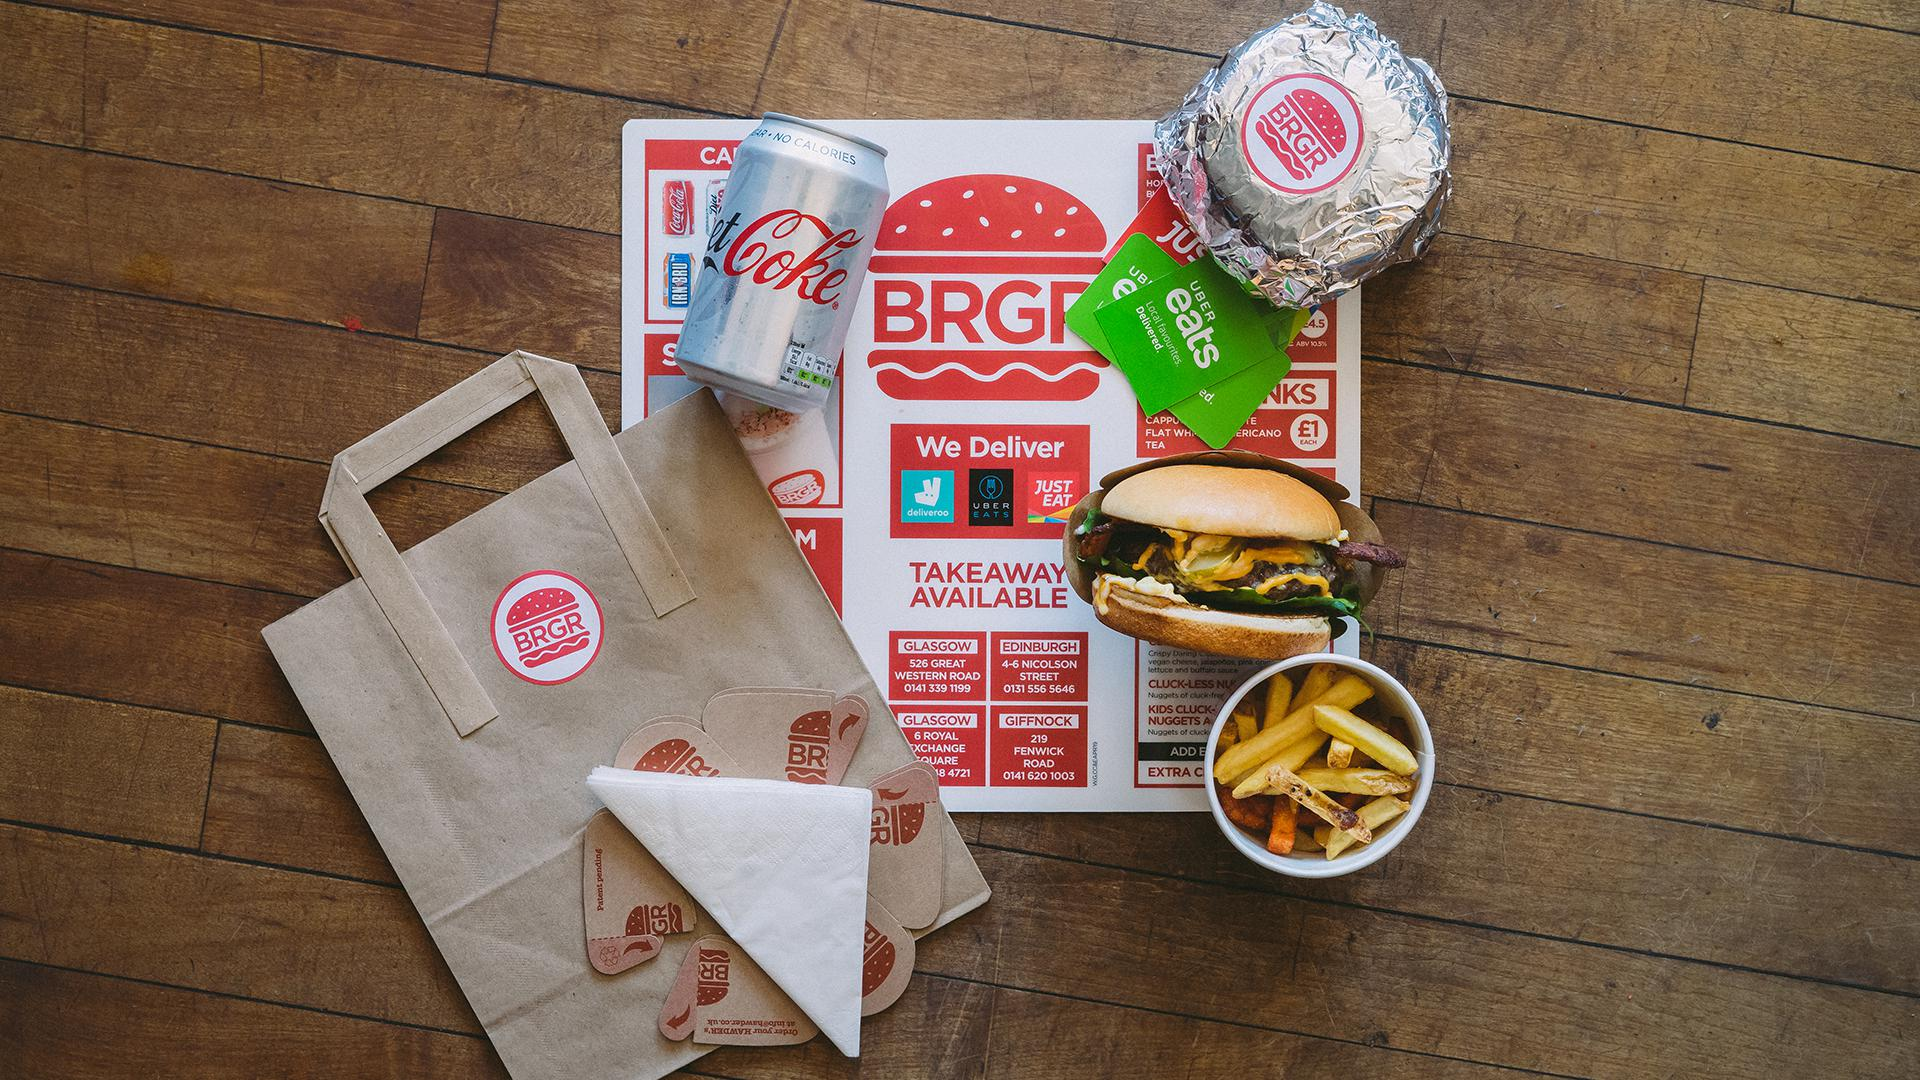 BRGR Glasgow Graphic Design